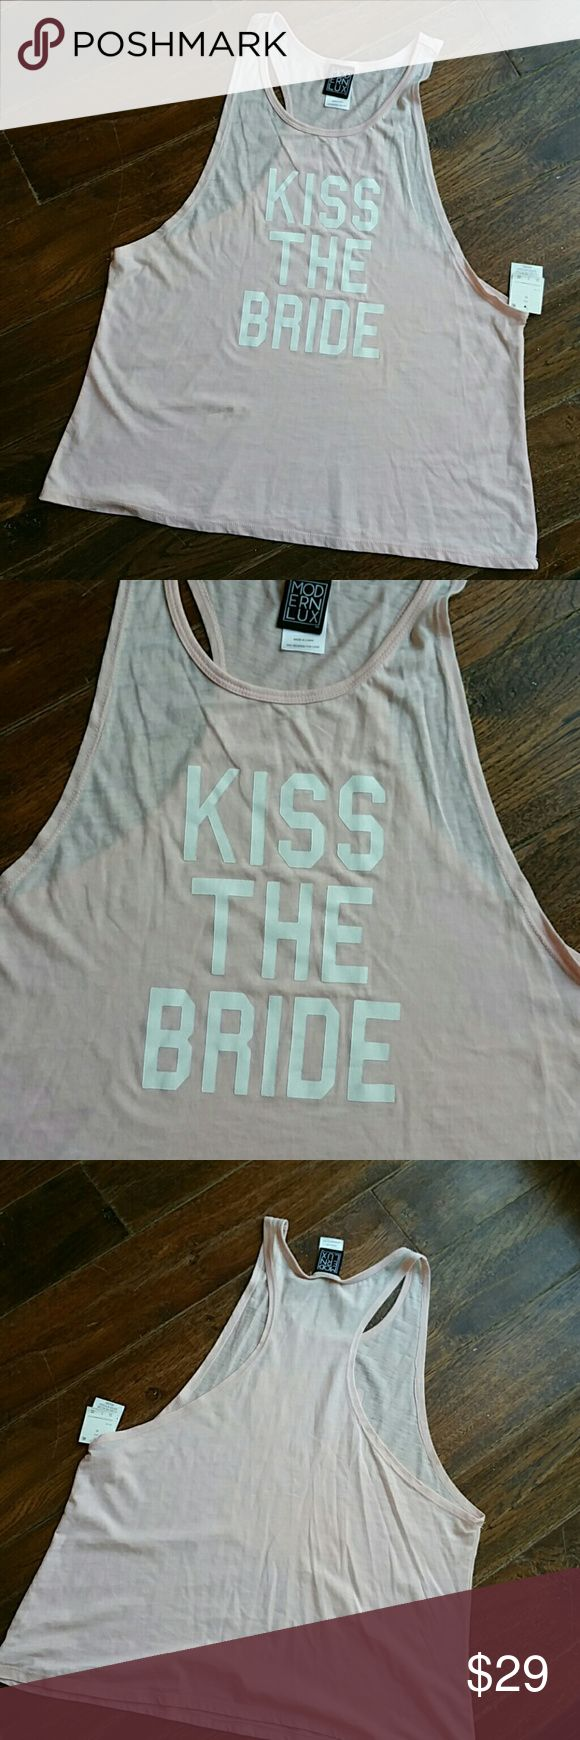 KISS THE BRIDE PINK TANK TOP This is a really cute Razorback pink tank top that says kiss the bride would be a great gift for bridal shower or Bachelorette night new with tags excellent condition I also carry this in a medium Modern Lux Tops